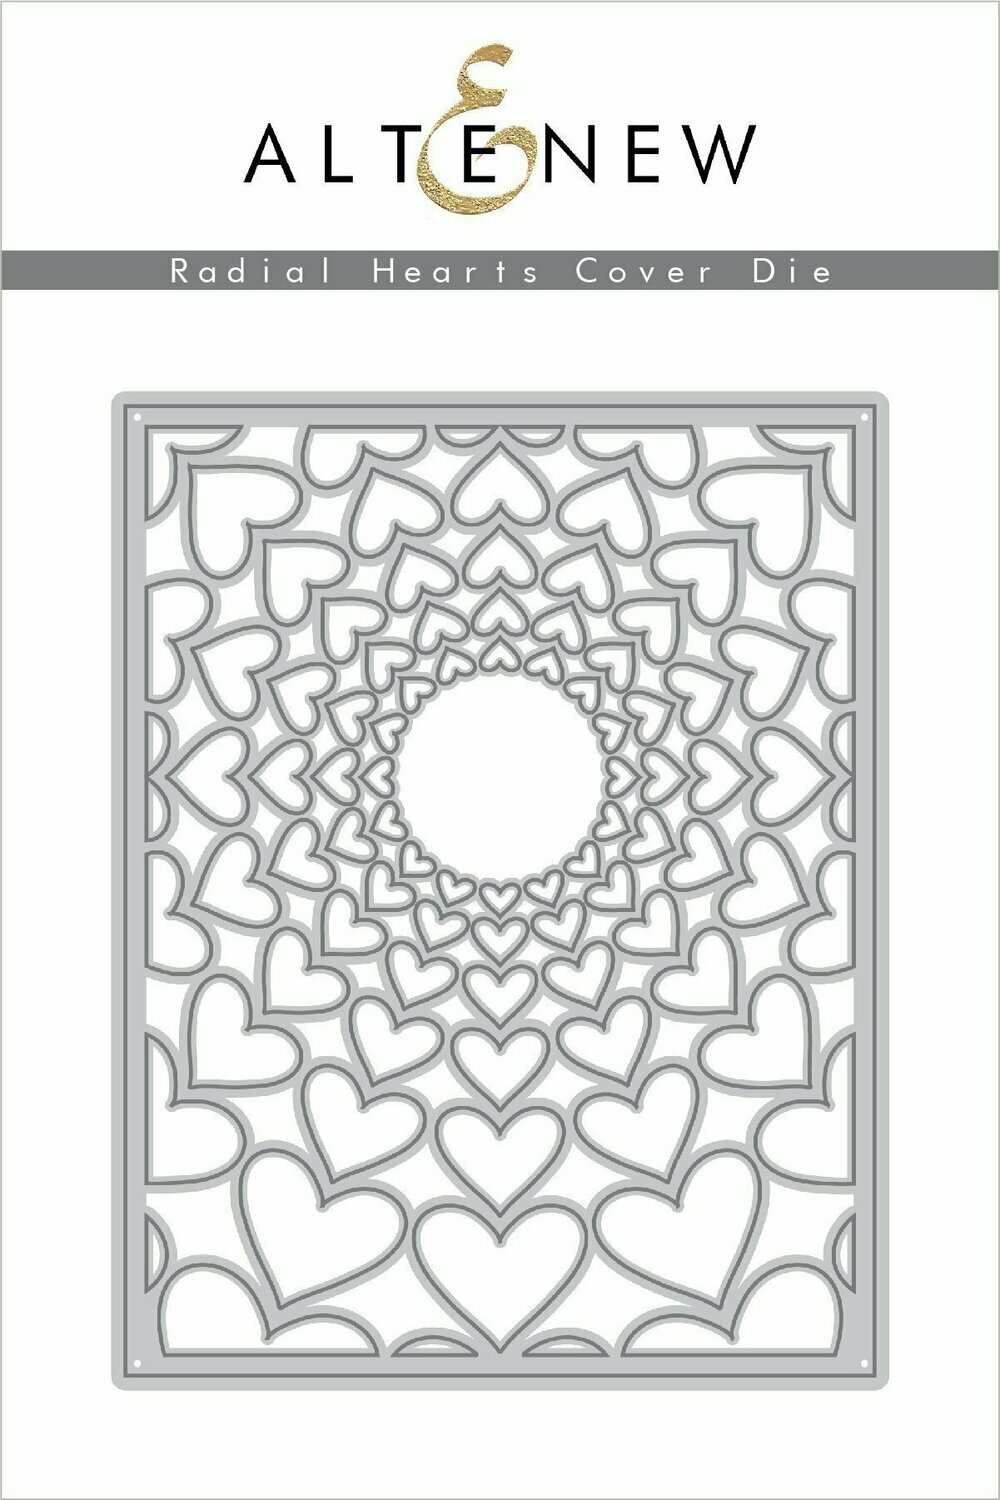 Altenew RADIAL HEARTS COVER Die